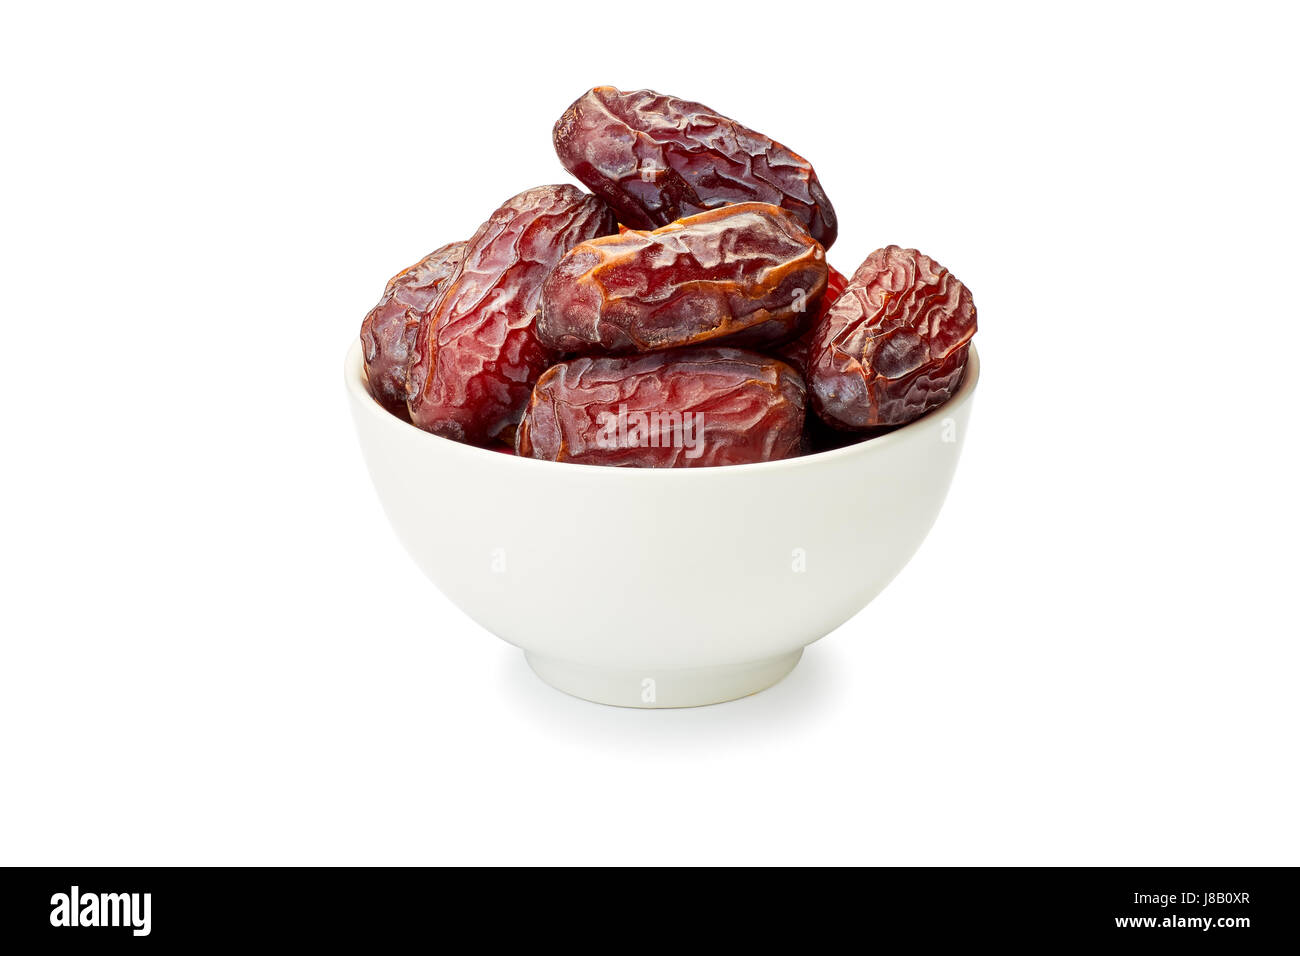 Bowl of dried date fruits on white - Stock Image